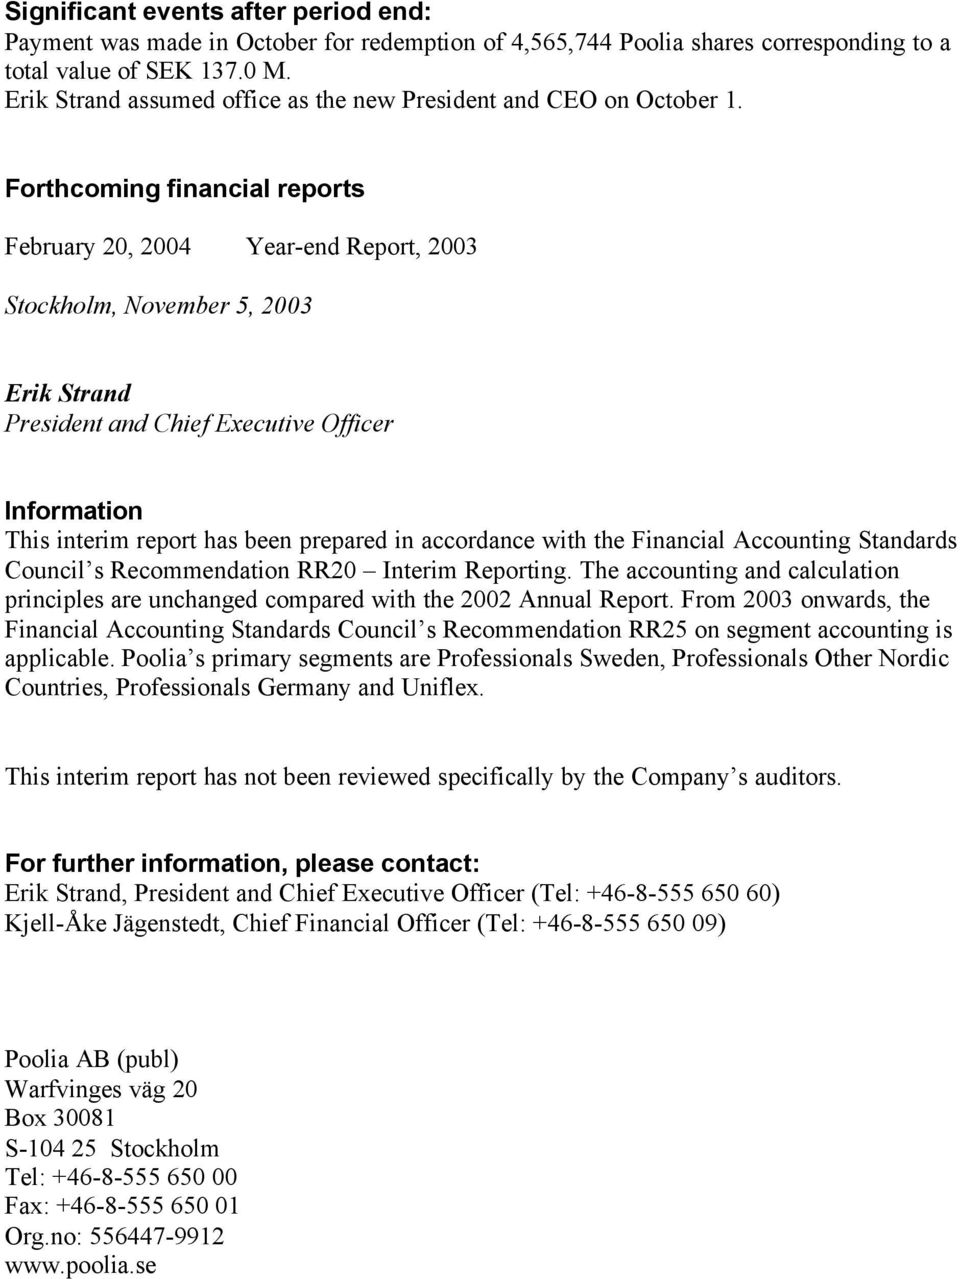 Forthcoming financial reports February 20, 2004 Year-end Report, 2003 Stockholm, November 5, 2003 Erik Strand President and Chief Executive Officer Information This interim report has been prepared